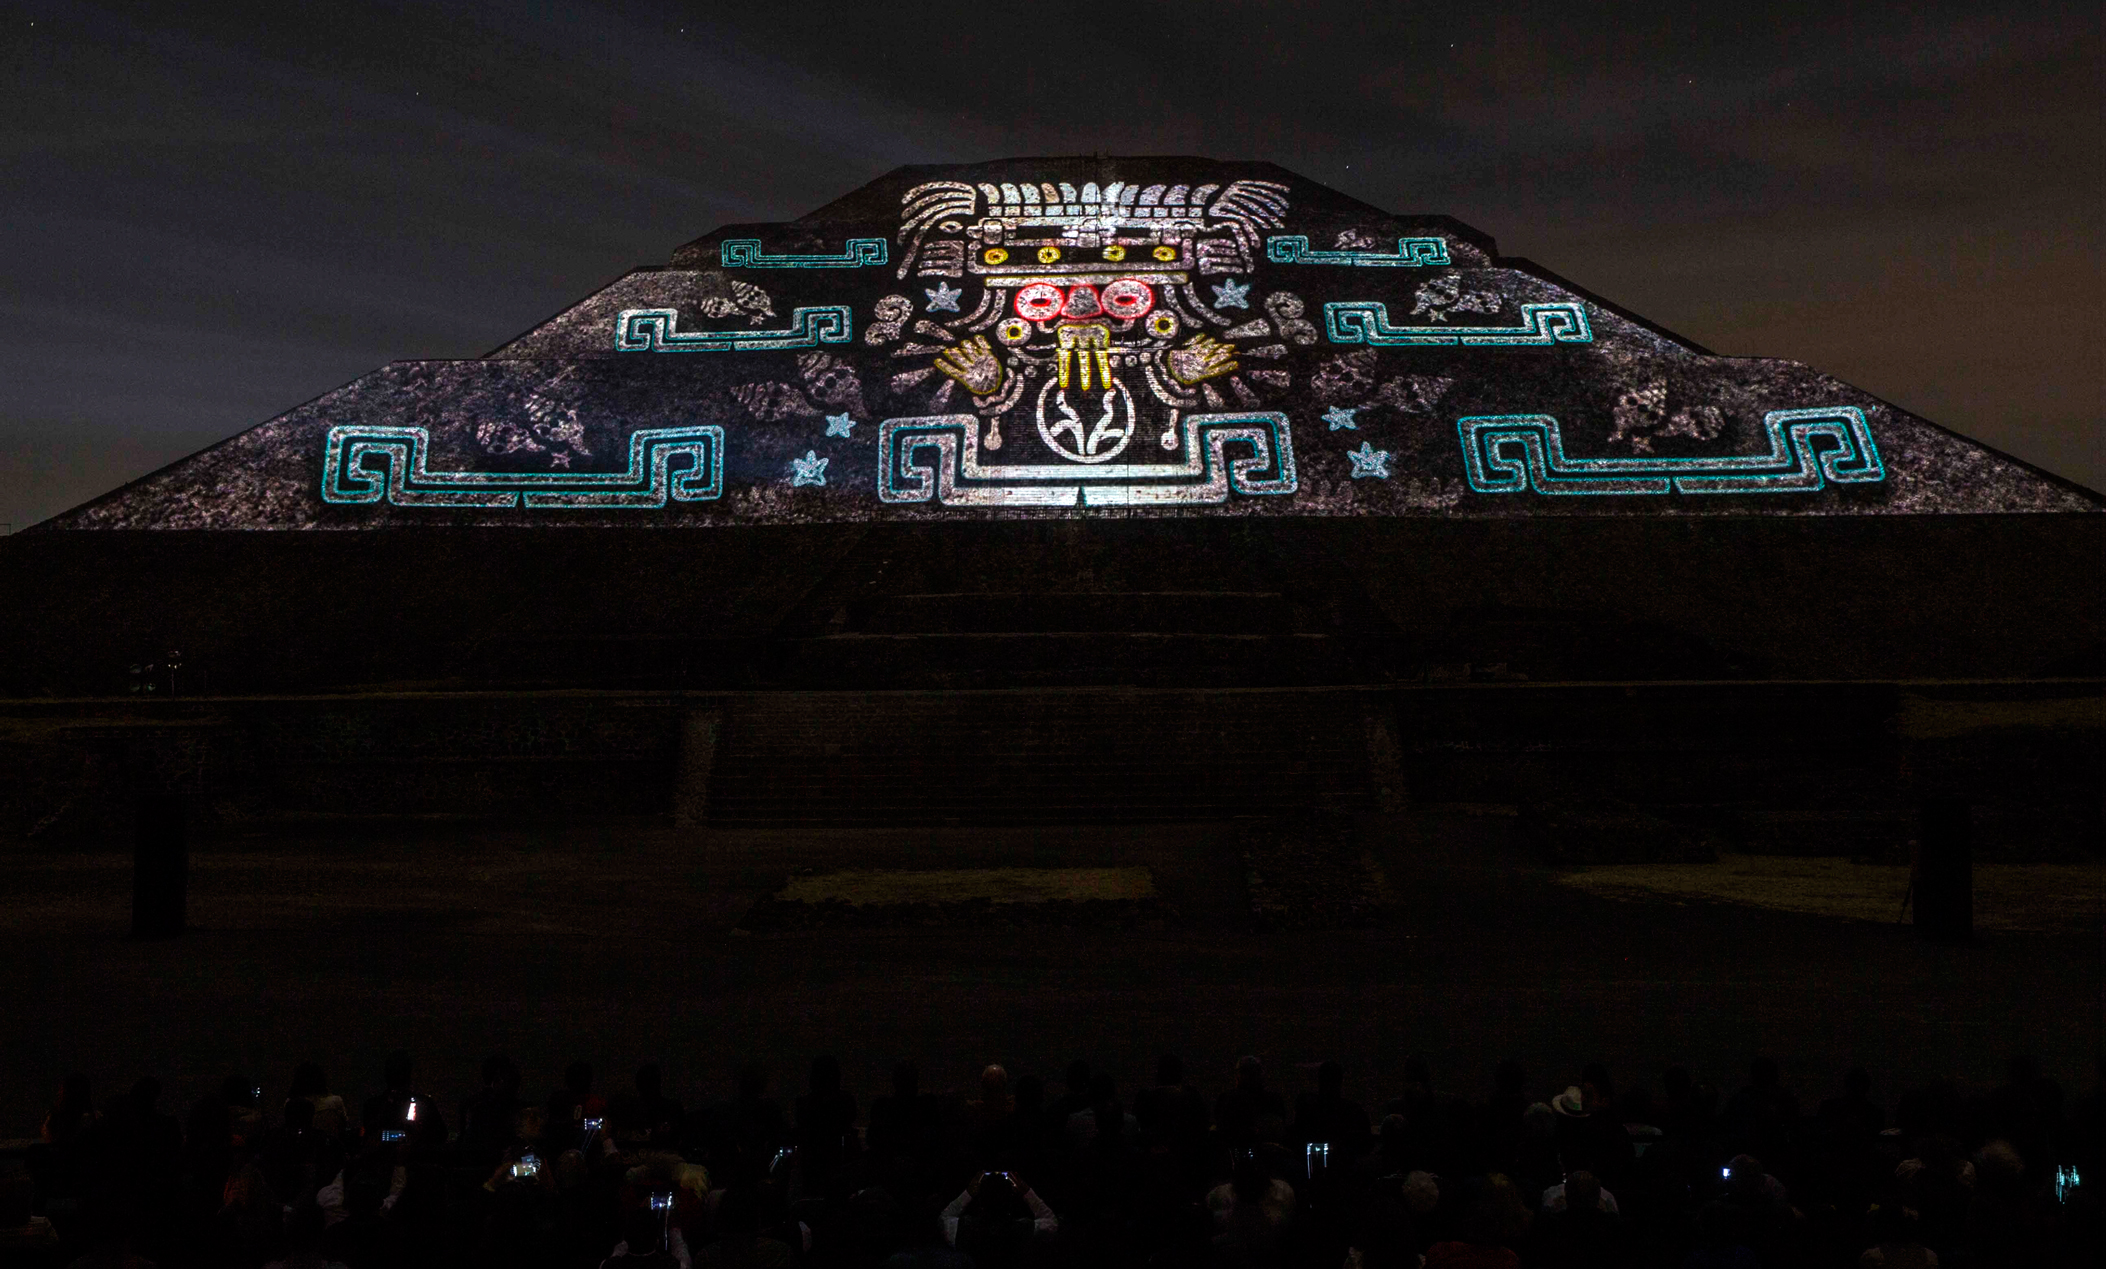 Ya conoces la experiencia nocturna de teotihuac n hello df for Espectaculo de luces teotihuacan 2018